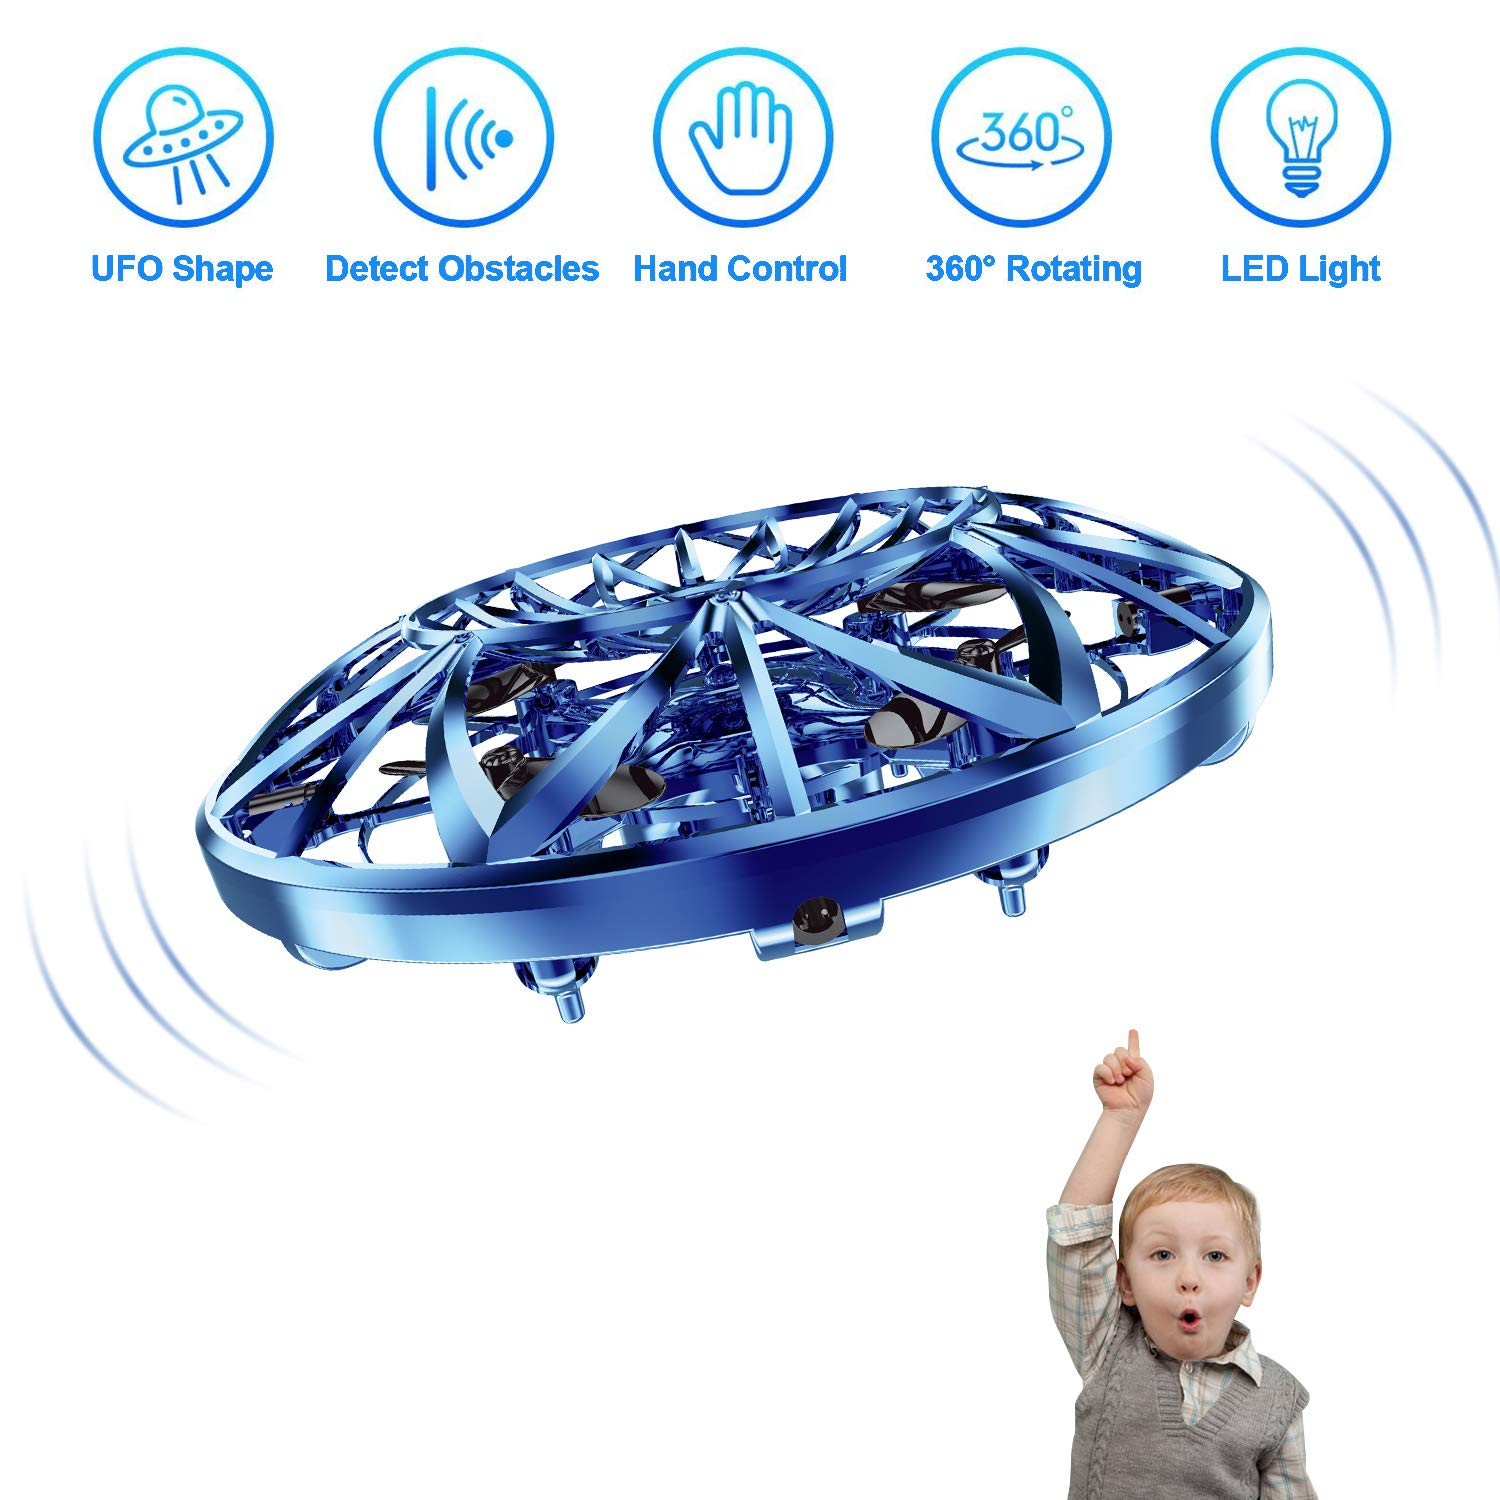 Hand Operated Drones for Kids,Hands Free Mini Drone Flying Ball Toys for Kids,Gift for Boy or Girl(Blue) by Tagitary